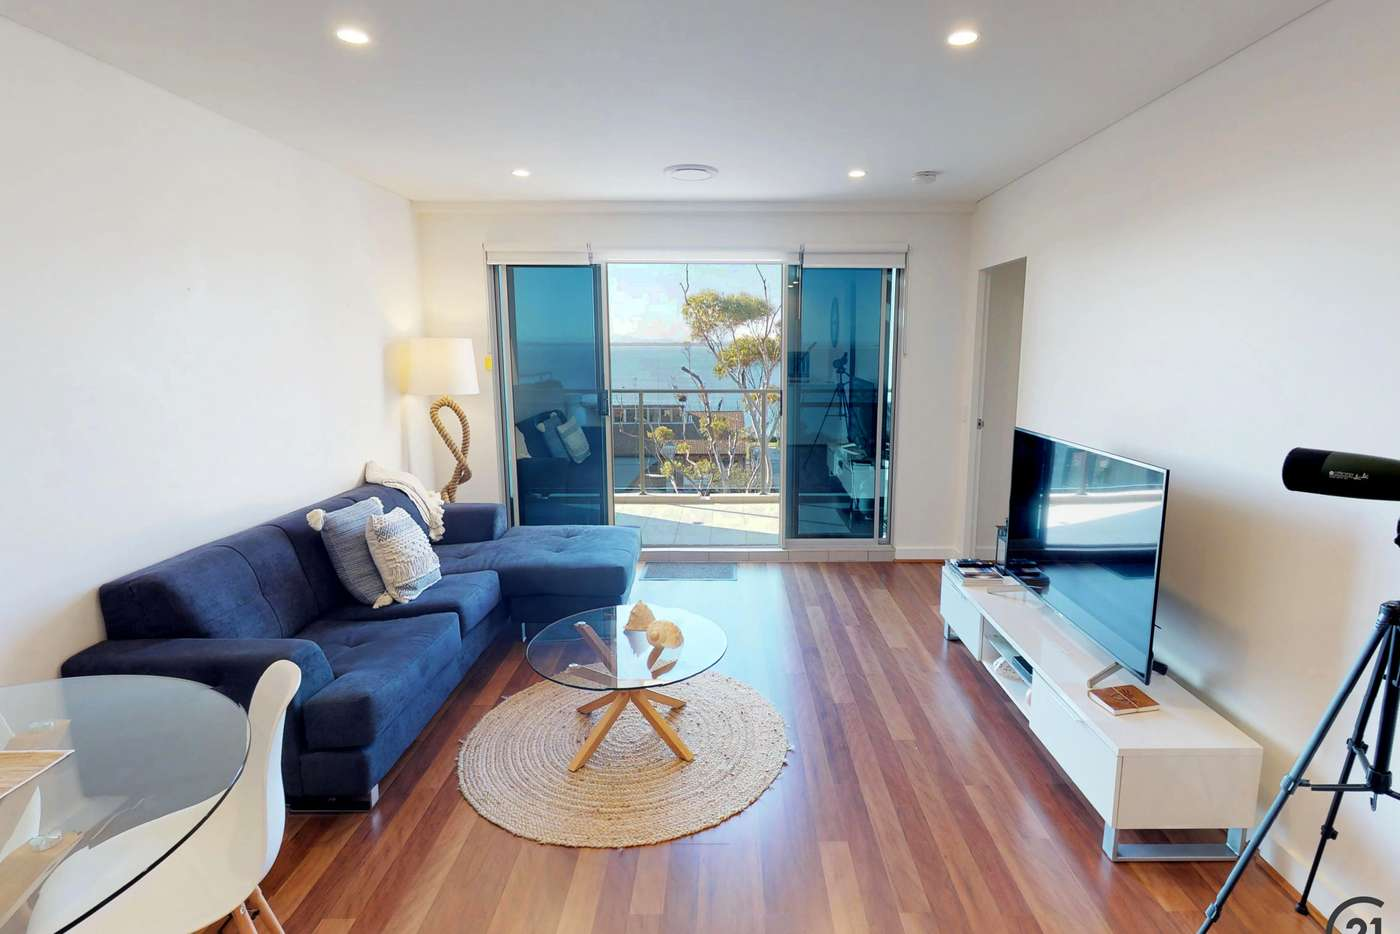 Sixth view of Homely apartment listing, 505/4-6 Bullecourt Street, Shoal Bay NSW 2315